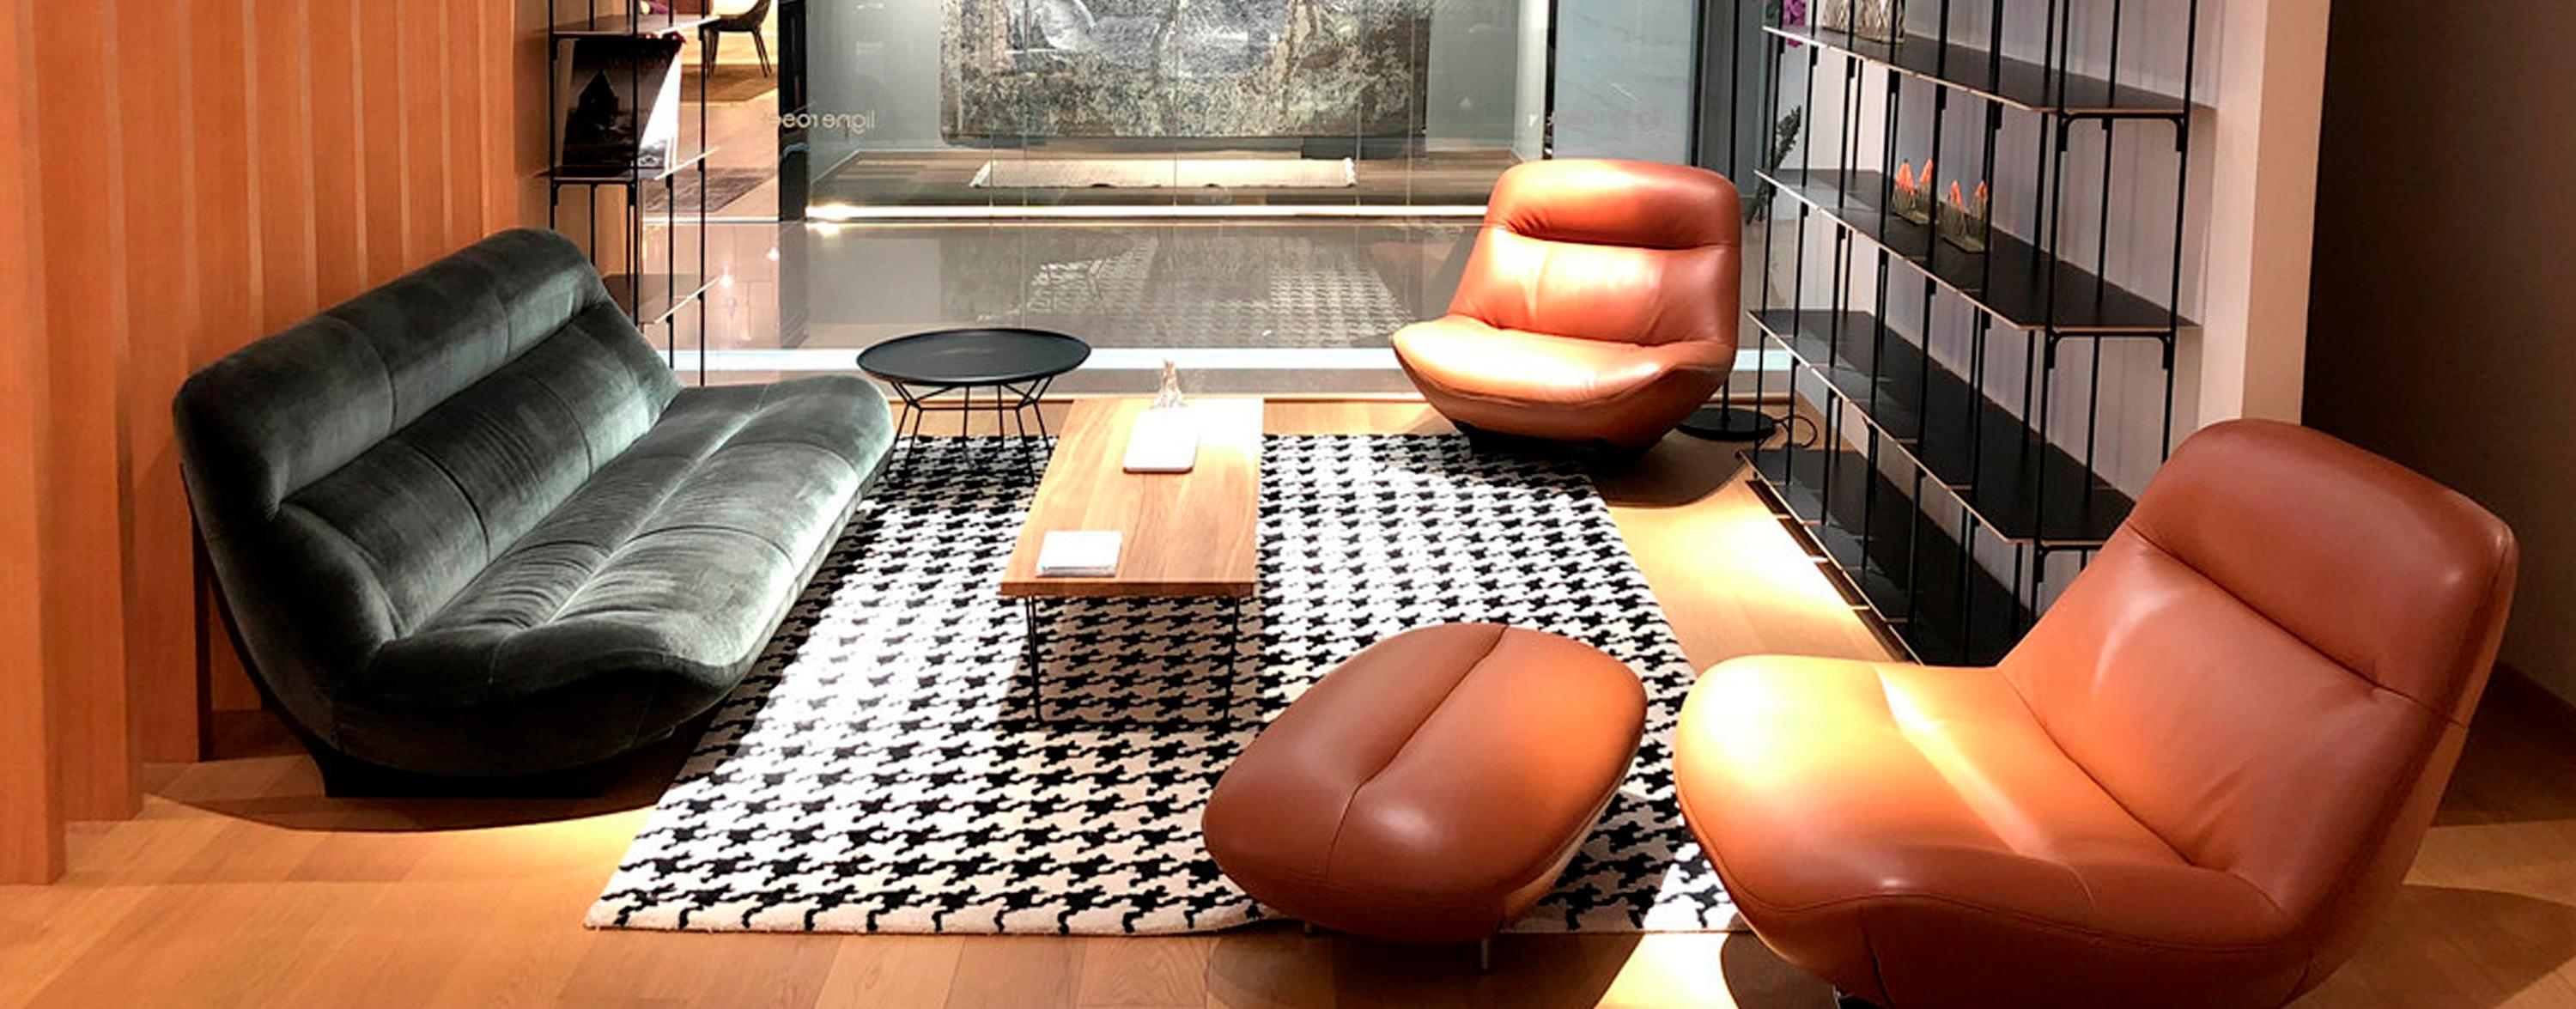 Guangzhou Showroom Ligne Roset